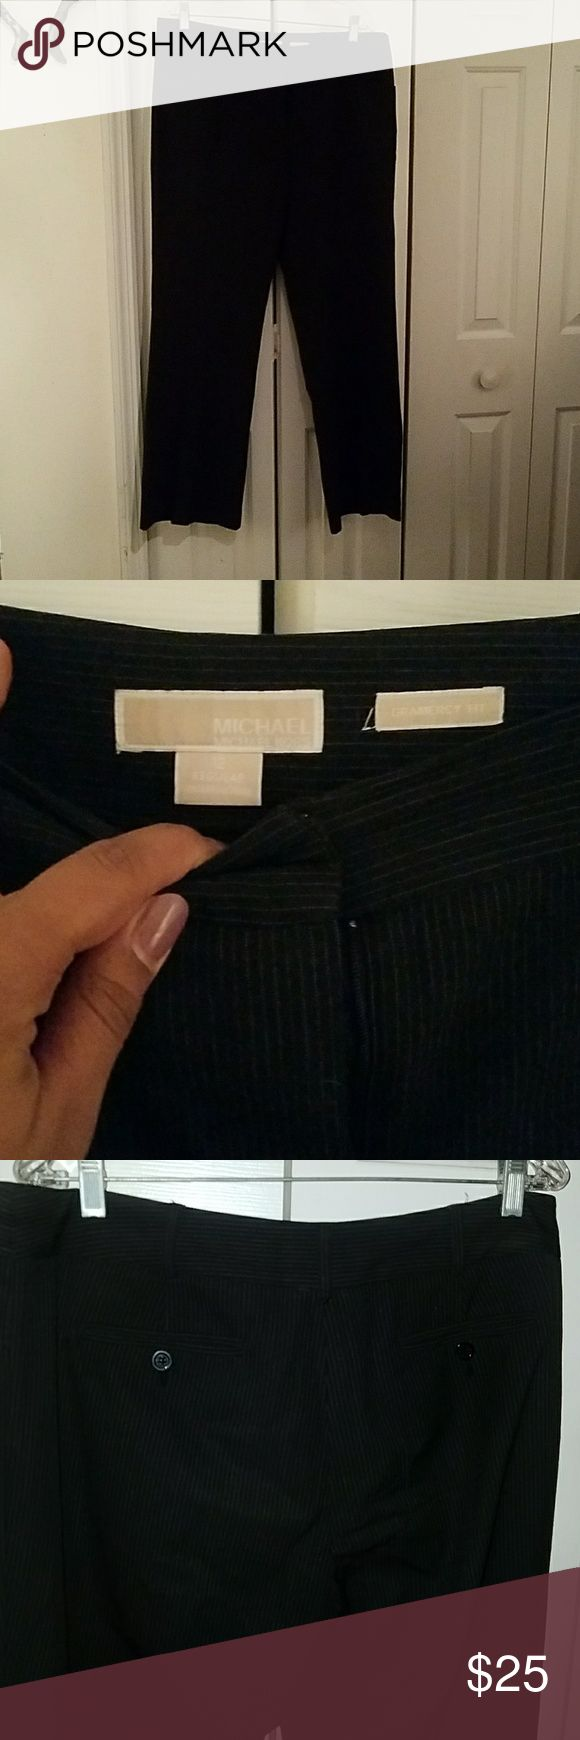 Michael Kors Pinstripe pants Gramercy fit, 4 pocket pants. A little spandex but mostly fitted. See measurements. Black with thin white pinstripes. Michael Kors Pants Trousers